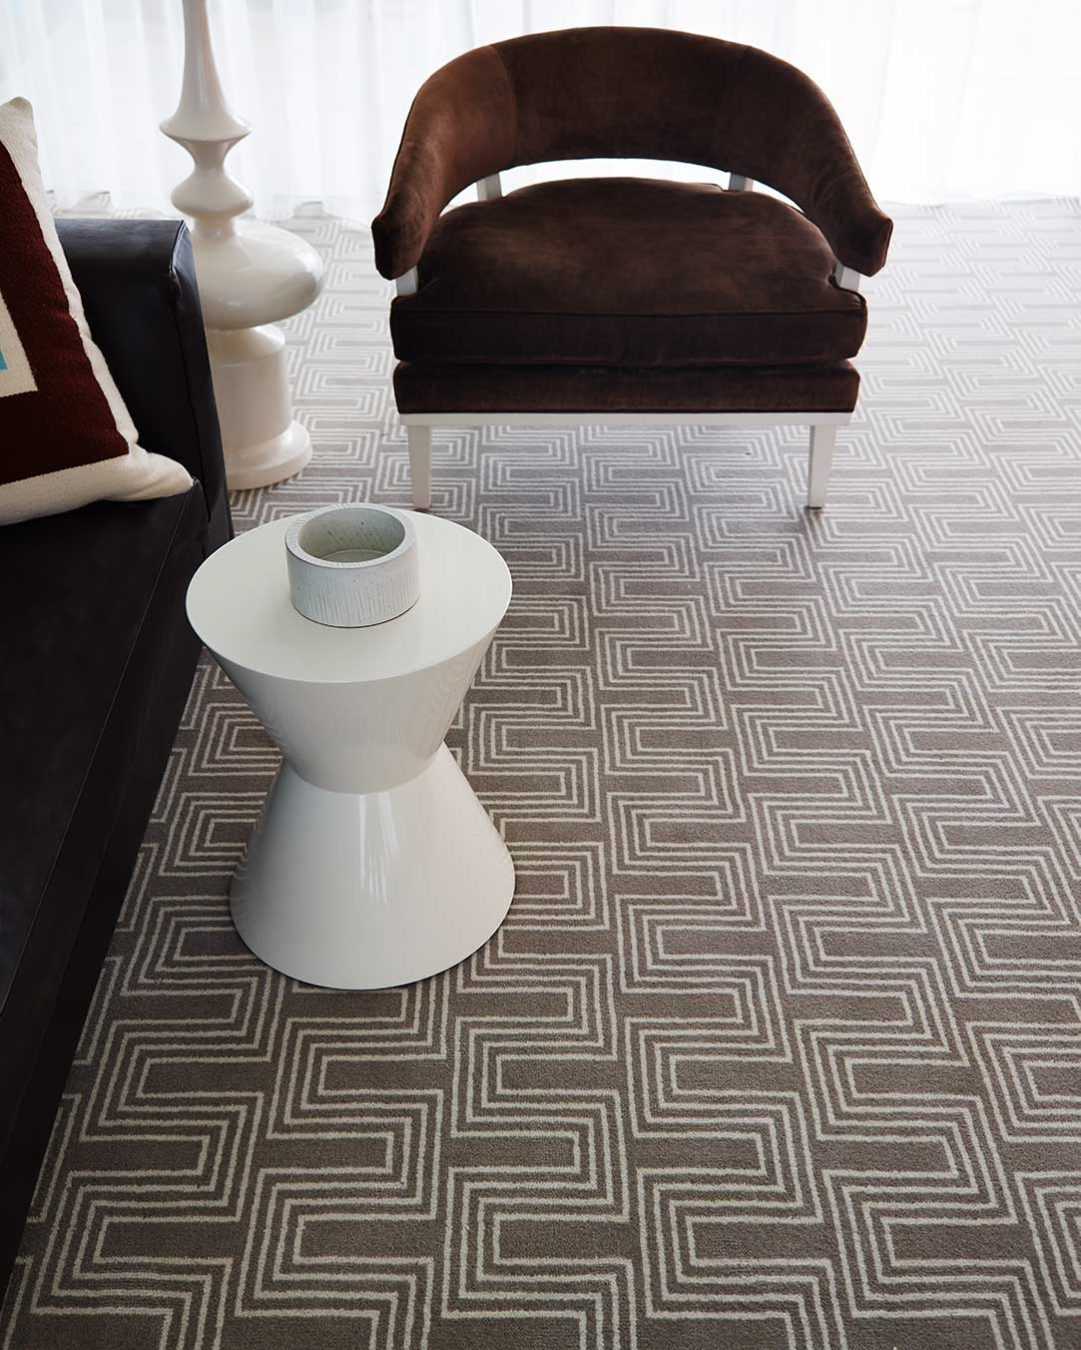 Close up view of Yves beige patterned Axminster carpet by Greg Natale